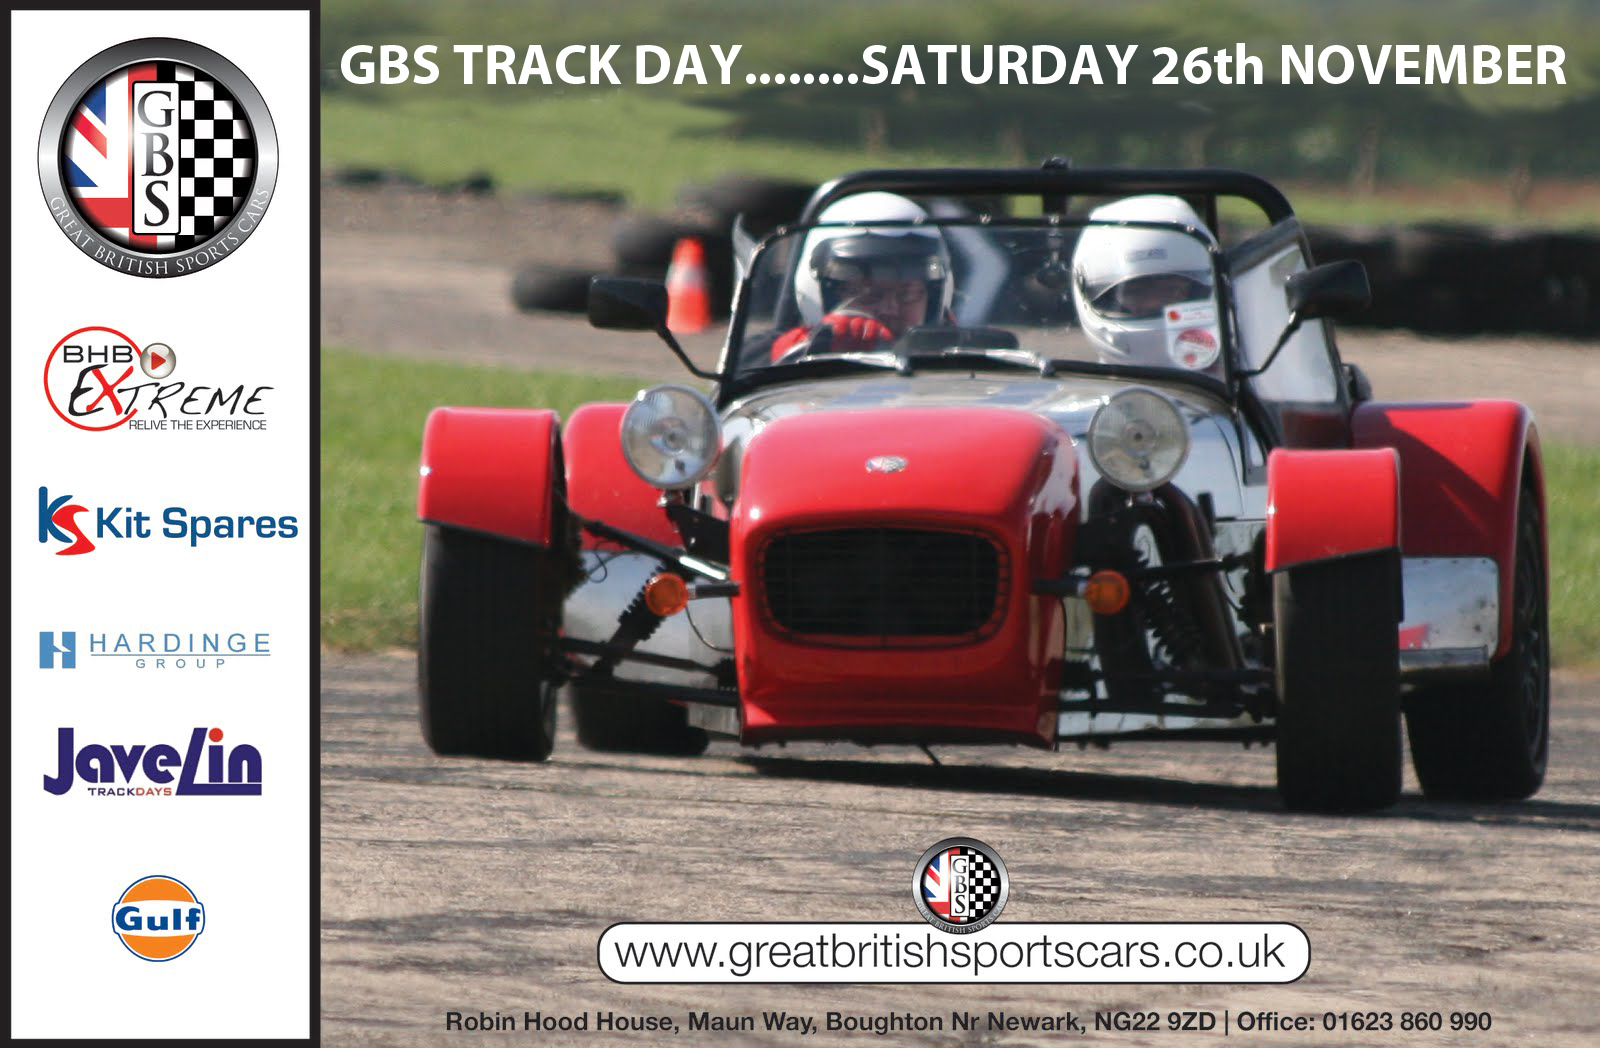 THIS WEEKEND GBS WILL BE AT THE MOTOR SPORT UK SHOW IN ...